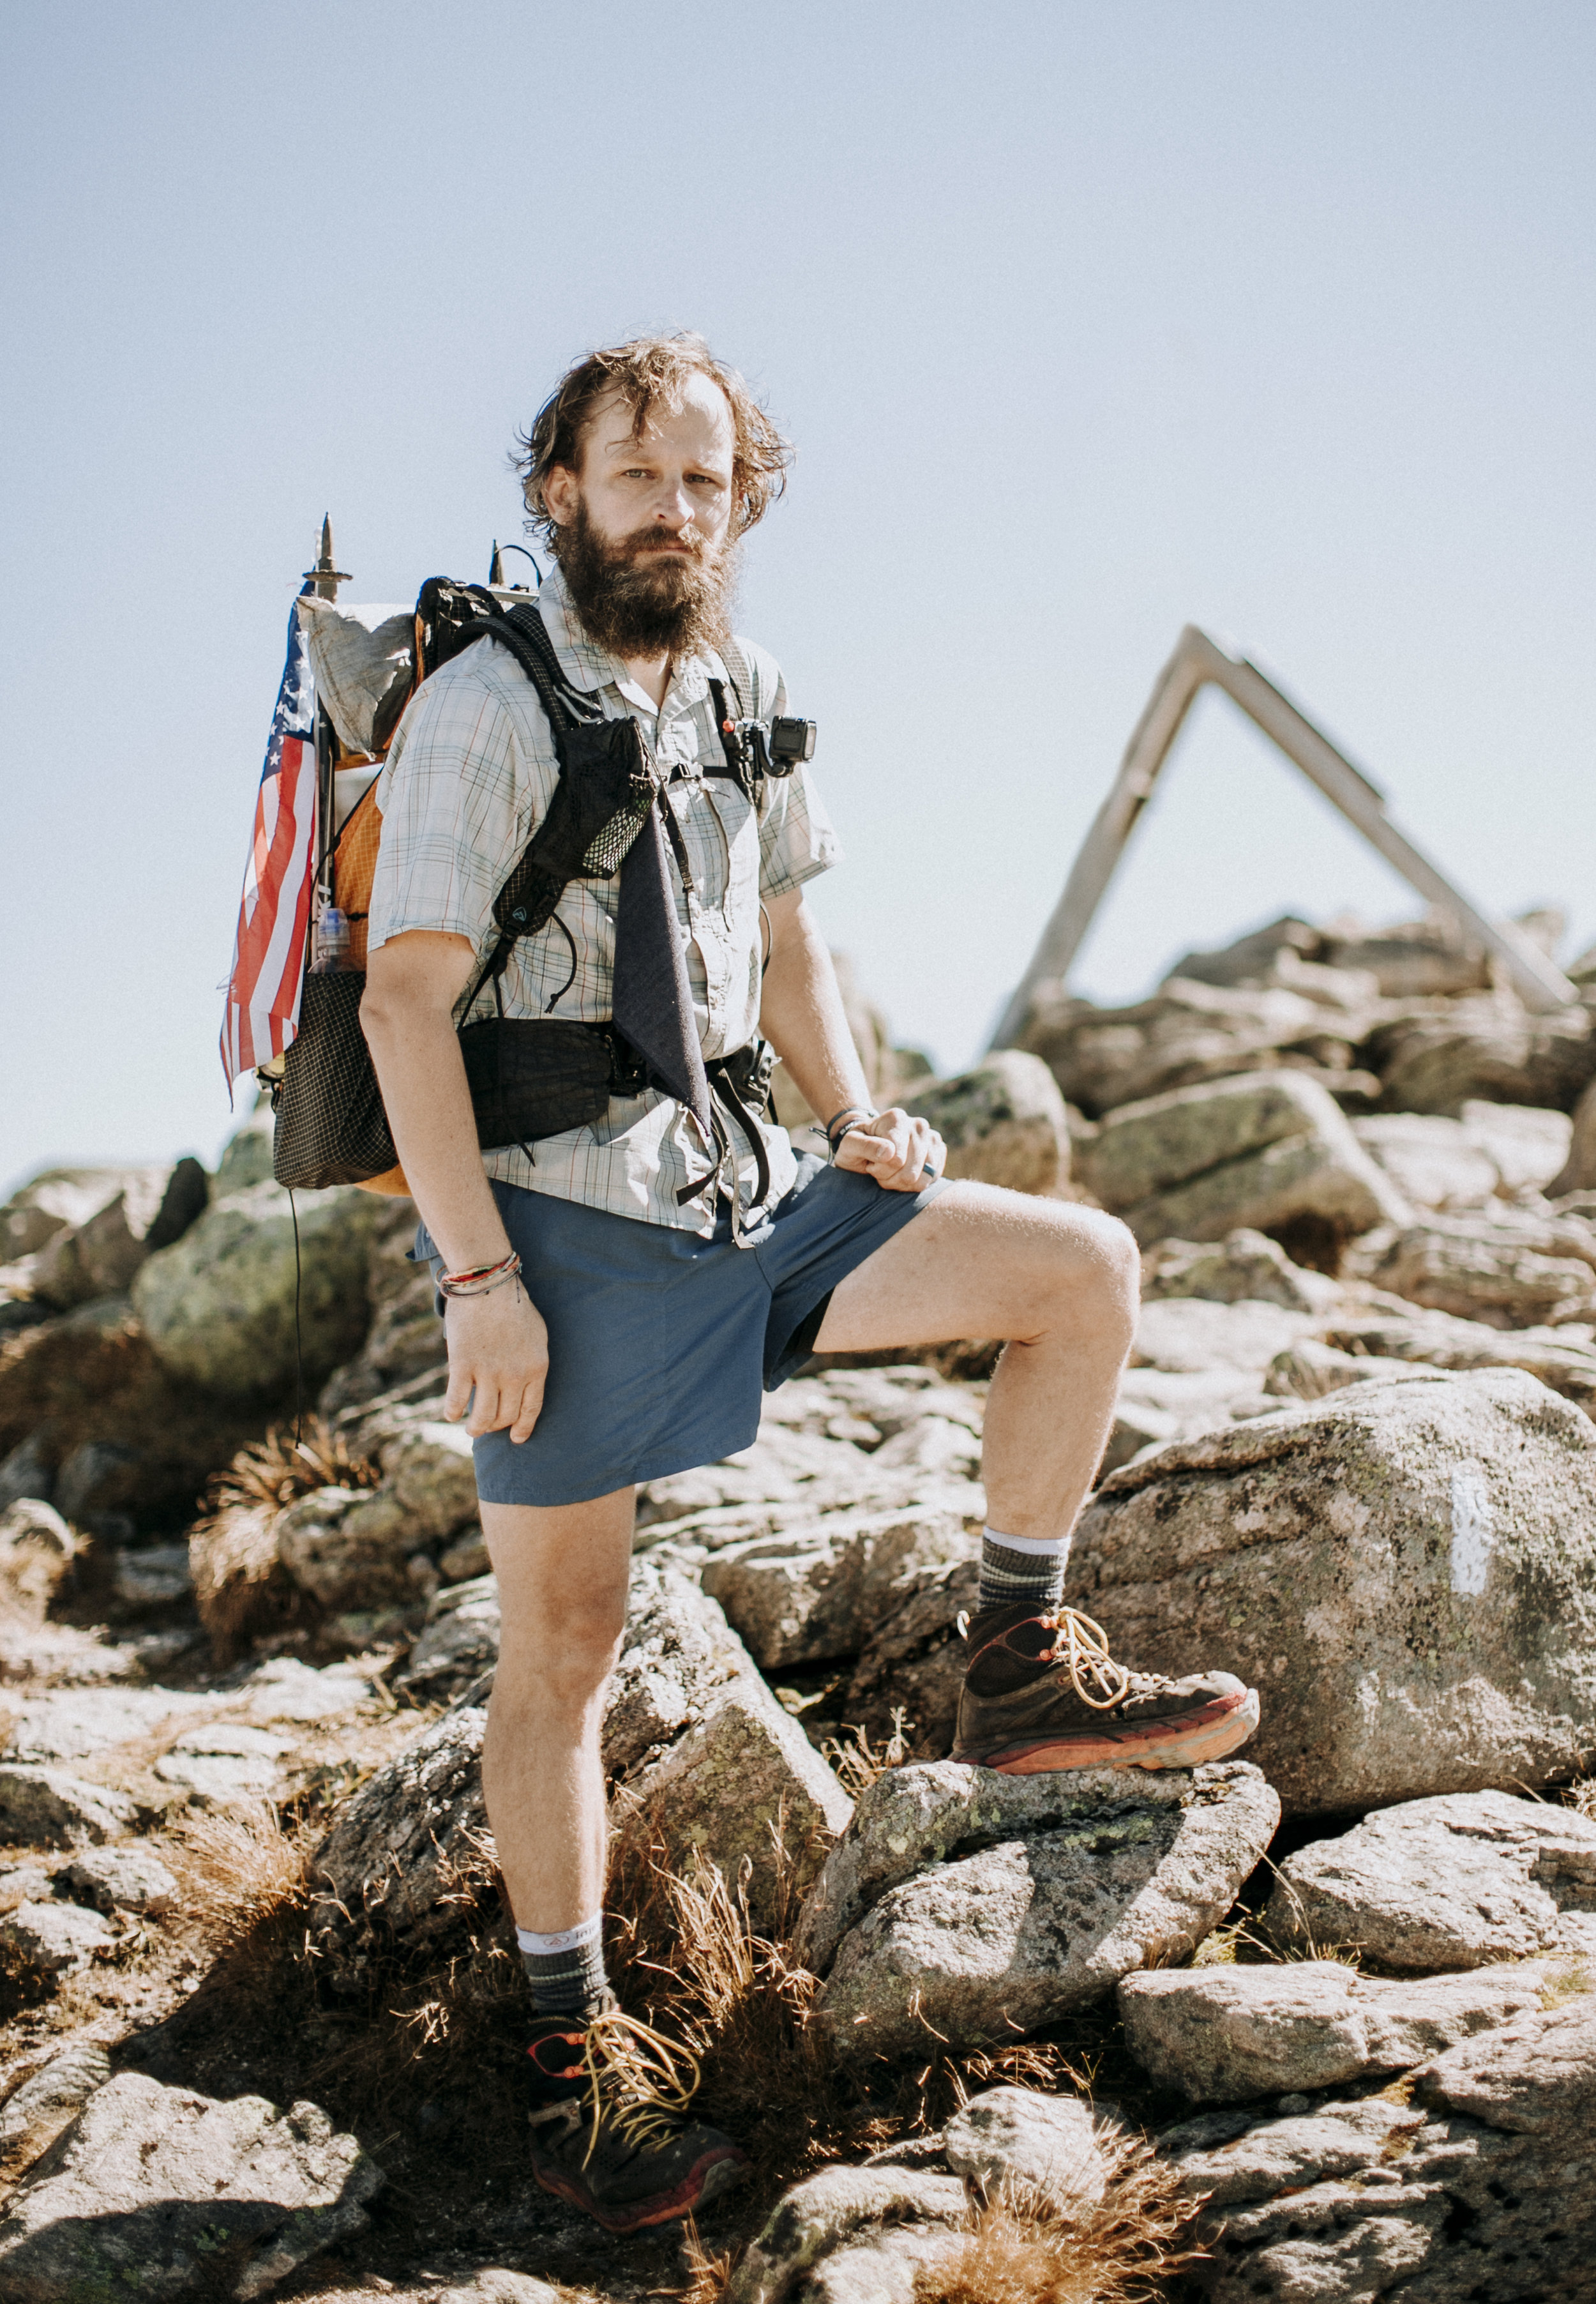 """I went to college in north Georgia, not far from Springer Mountain. I hiked with friends in college, and they went on and had the time to hike the trail back in the mid '90s, so it had always been on my mind. I talked about it more and more as I got into my 40s, and I got a chance to have some time away from work about a year ago."" With tears in his eyes, Michael continued: ""My wife basically told me I need to put up or shut up, so I put up. Here I am six months later. I did it for the adventure. It was everything I expected. It was an absolute adventure. Well worth it. What is next? Man, tha'ts harder than deciding to hike the trail. I don't have a job lined up when I get home, but my wife has been extremely supportive."""